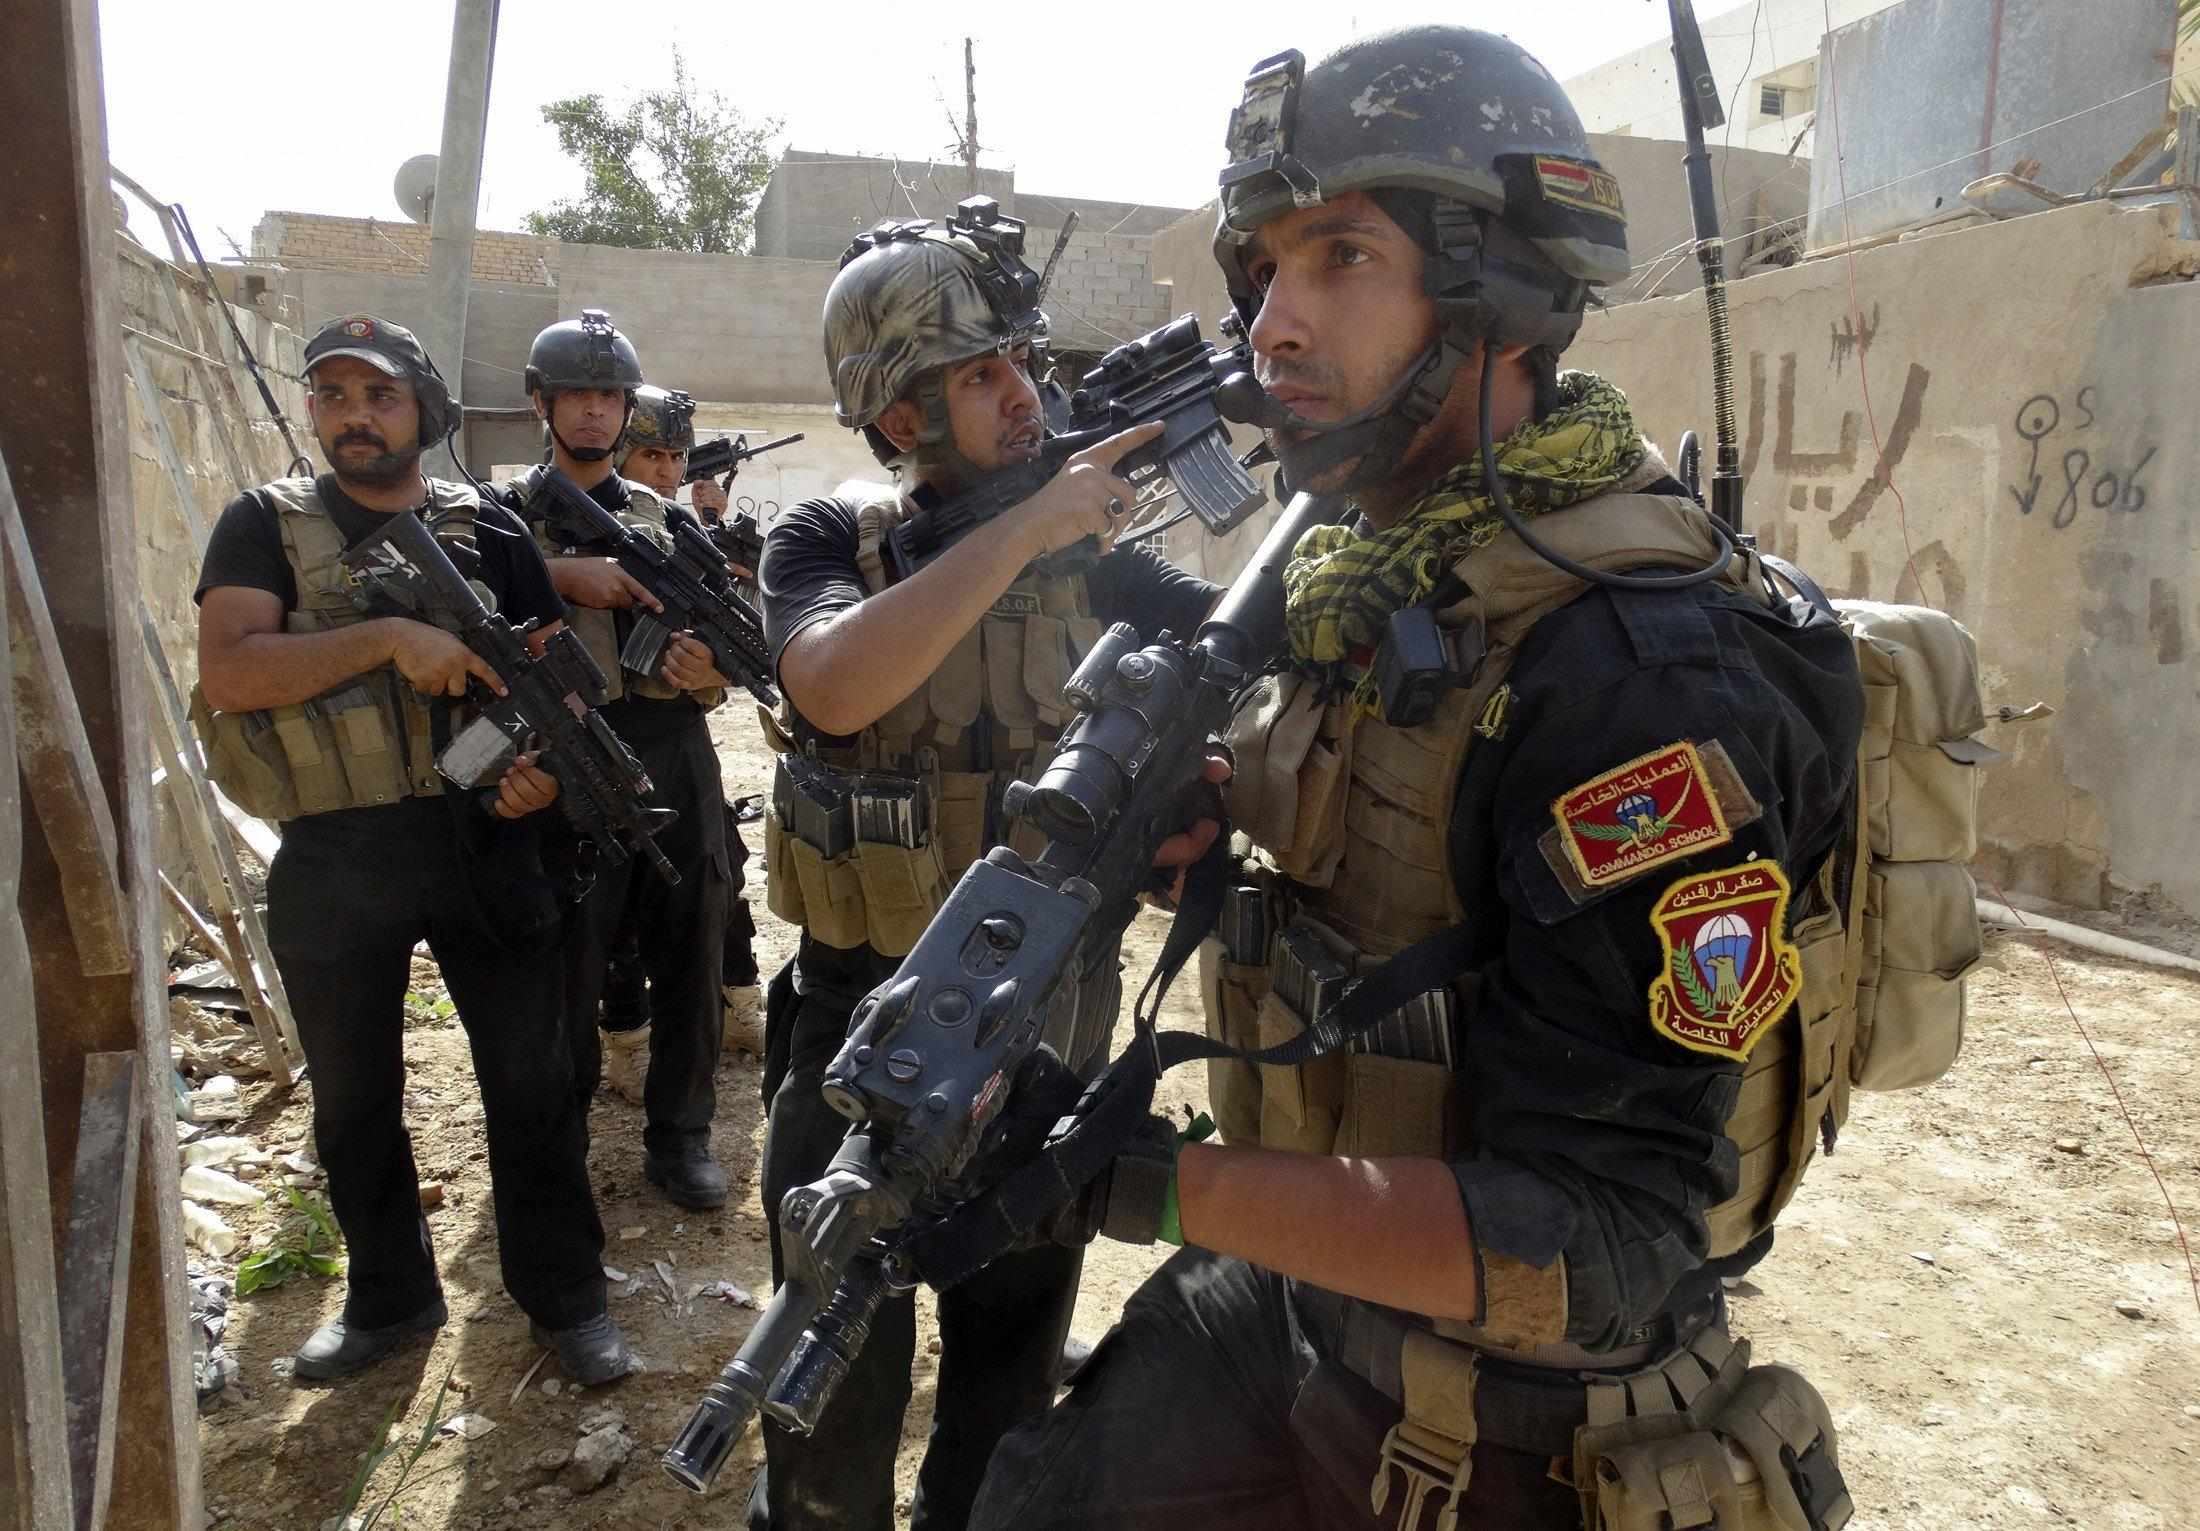 Image: Members of the Iraqi Special Operations Forces take positions during a patrol looking for militants of ISIL, explosives and weapons in Ramadi